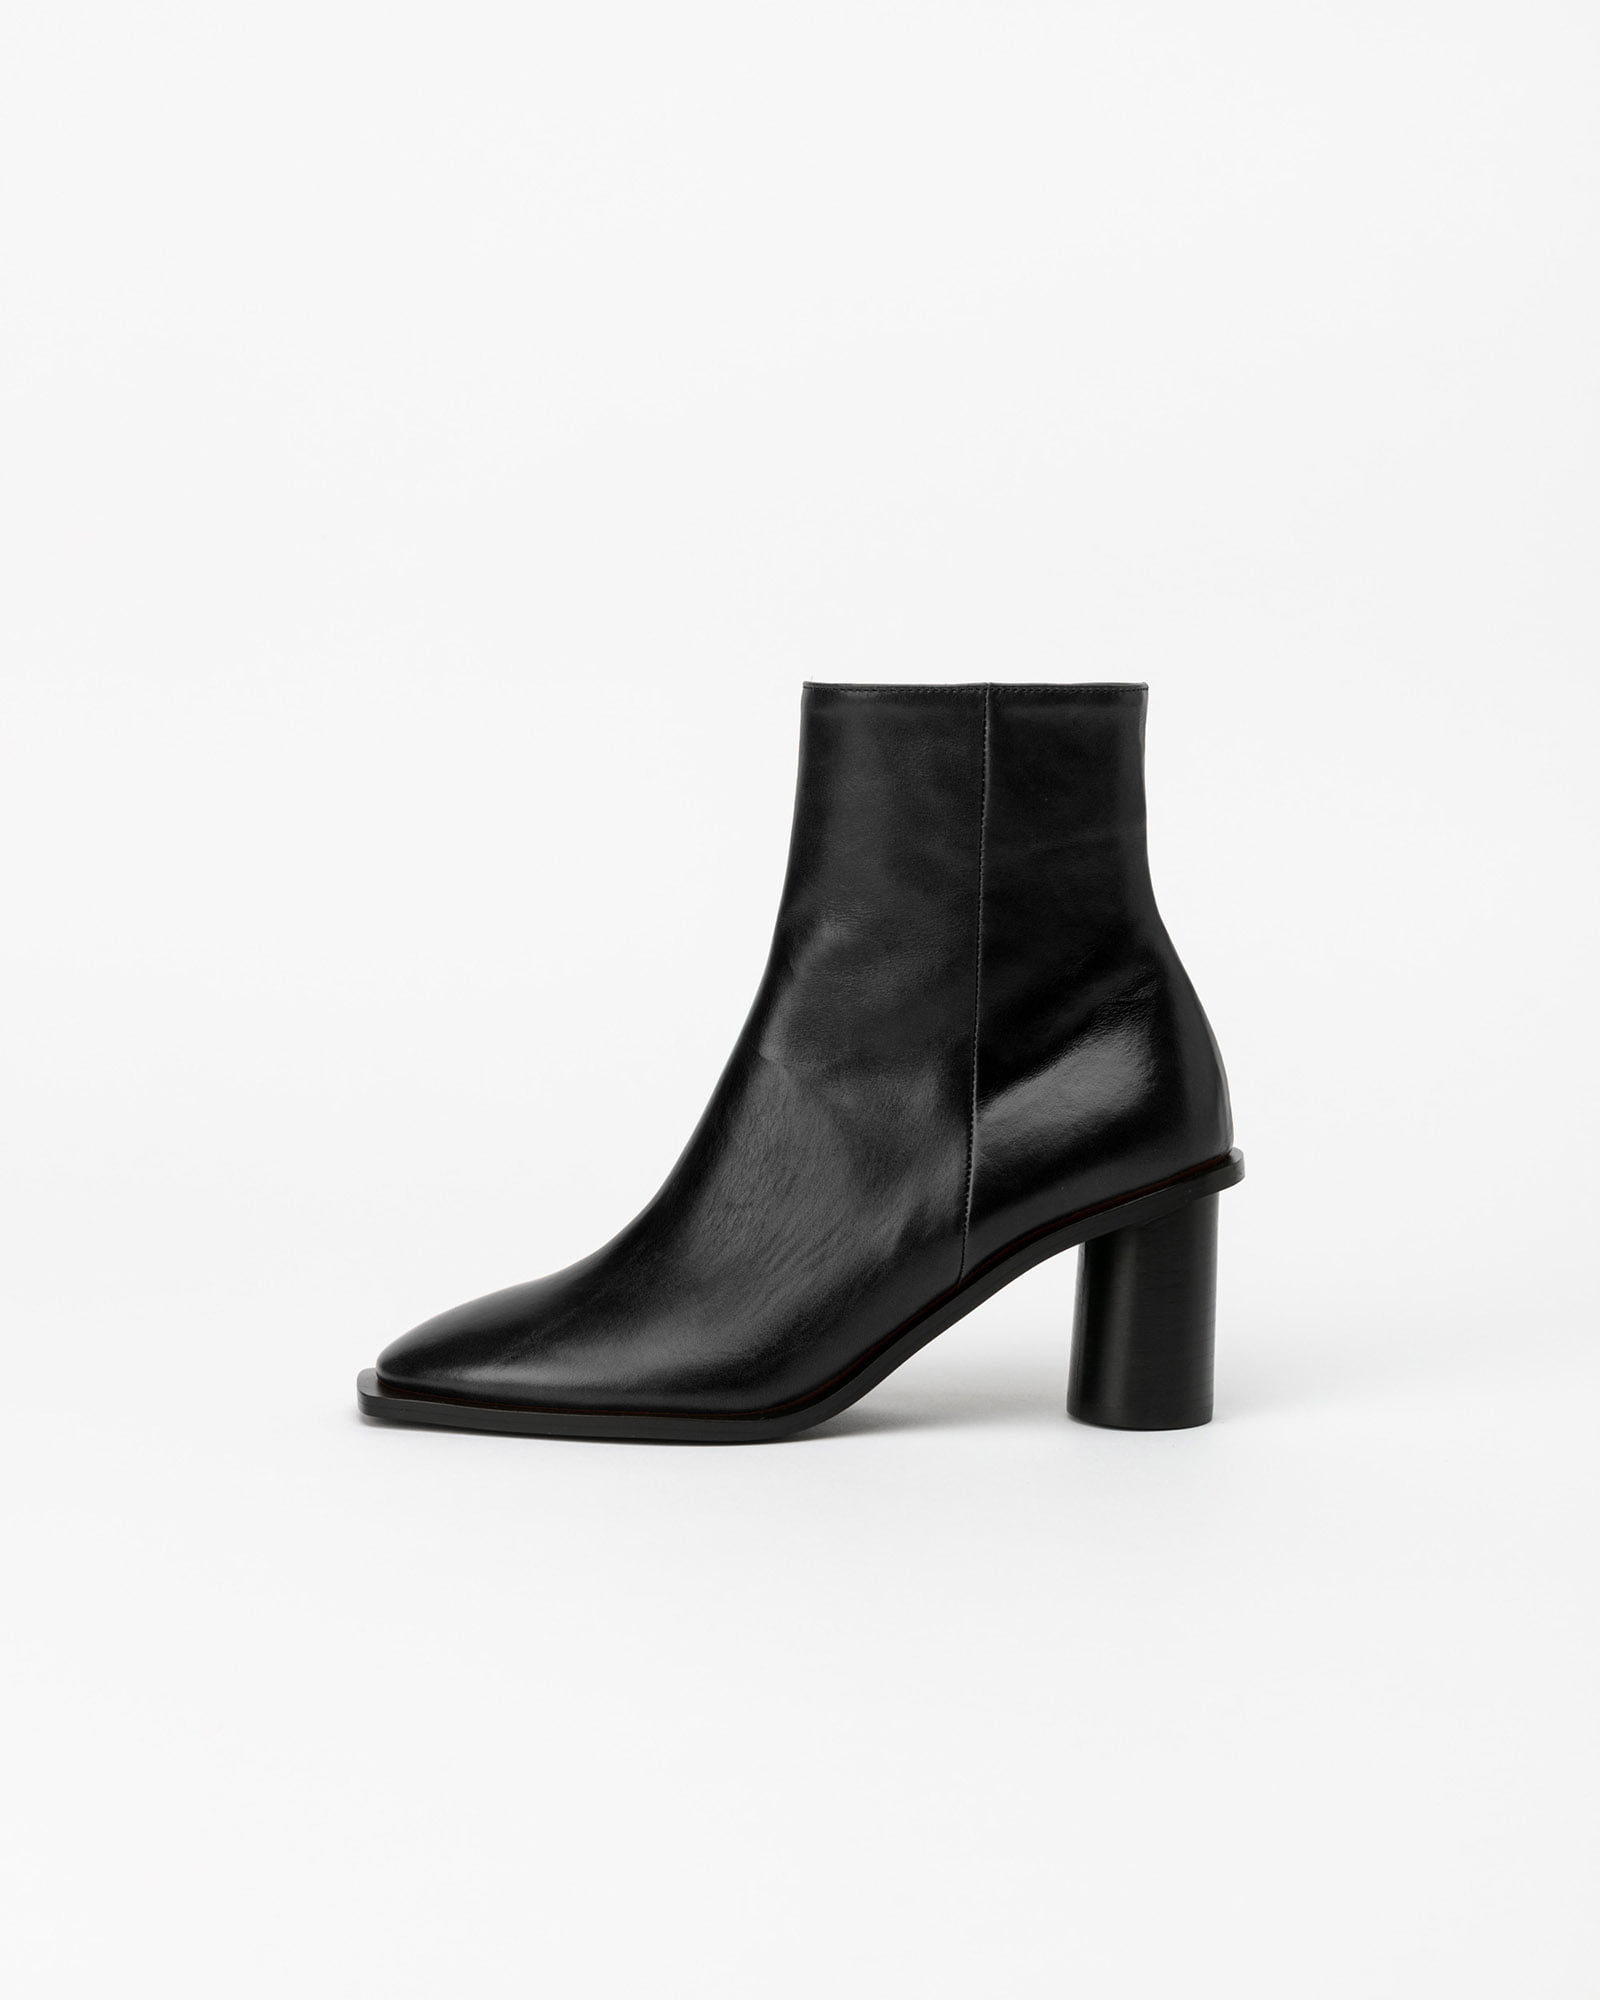 Altezza Boots in Black Textured Kip